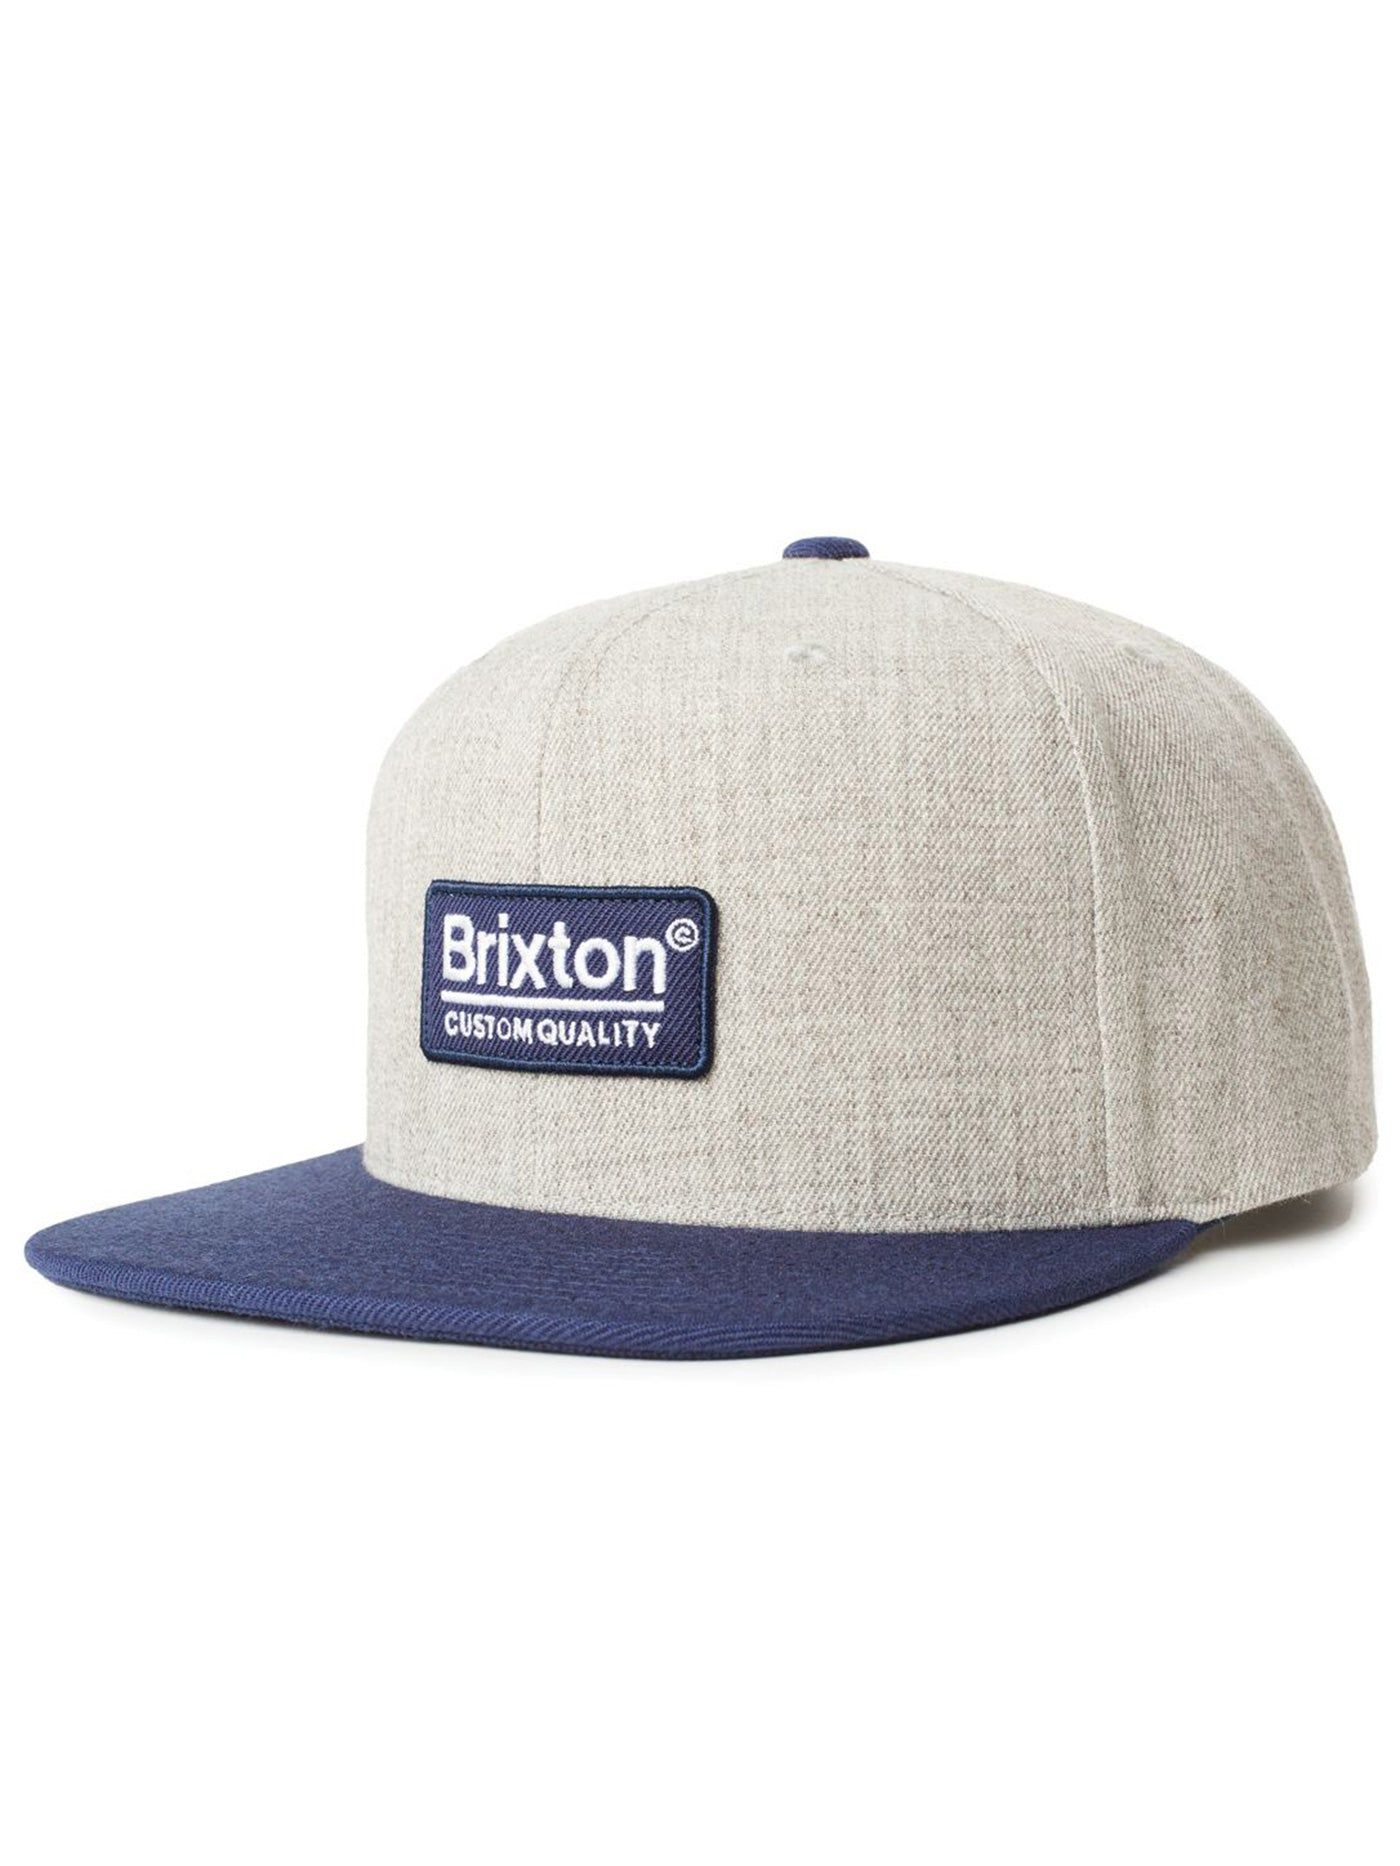 HEATHER GREY/WASHED NAVY